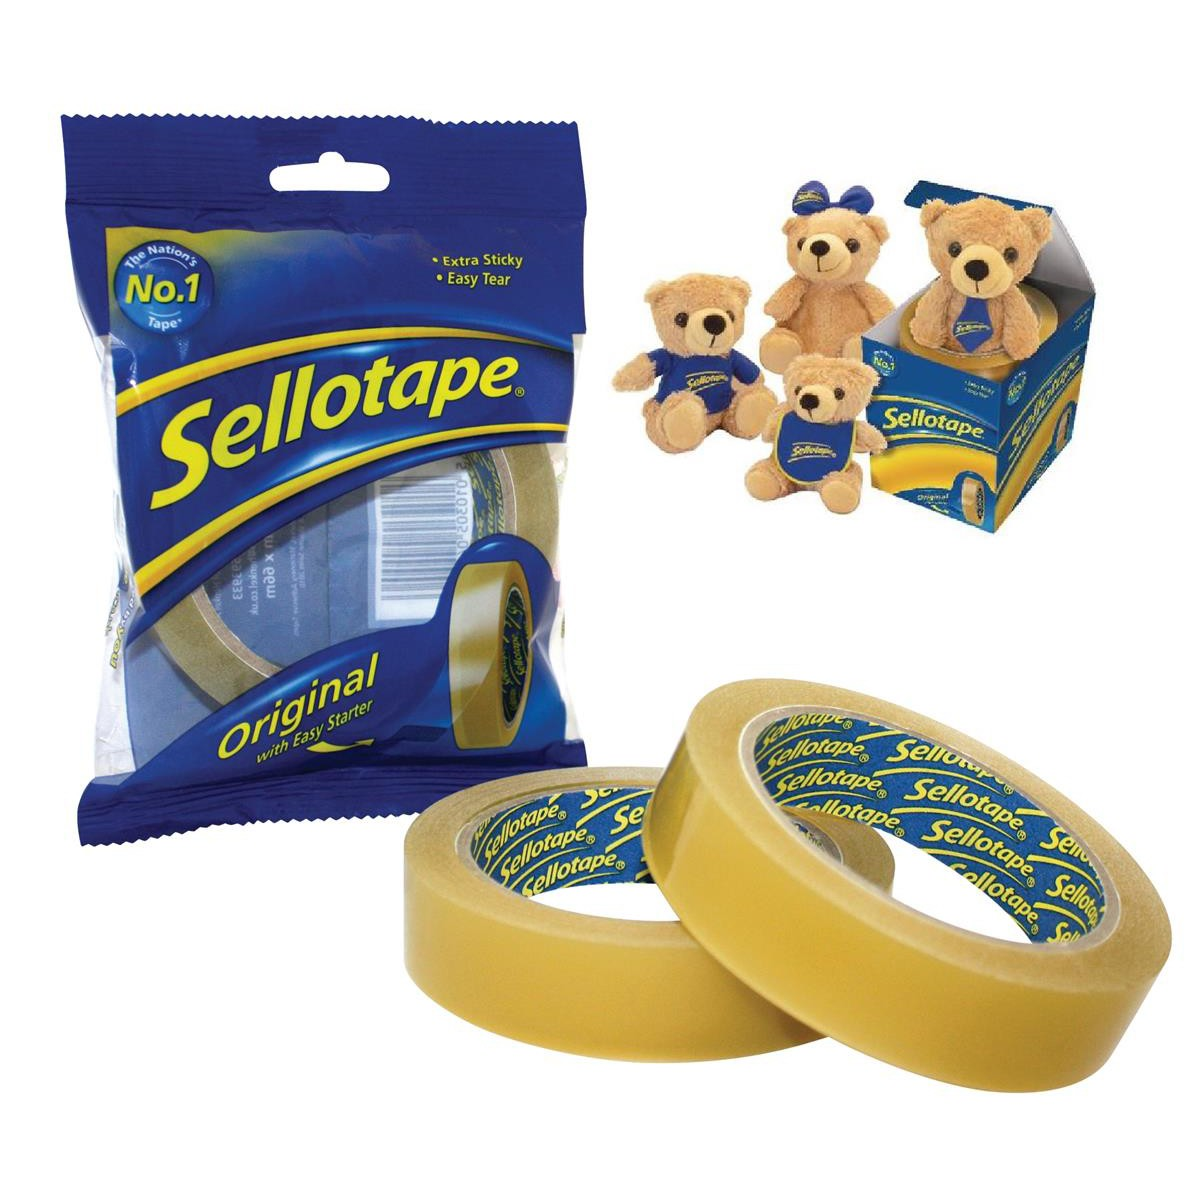 Sellotape 24mm x 66m Golden Tape Pk6 + FREE Sellotape Teddy Bear